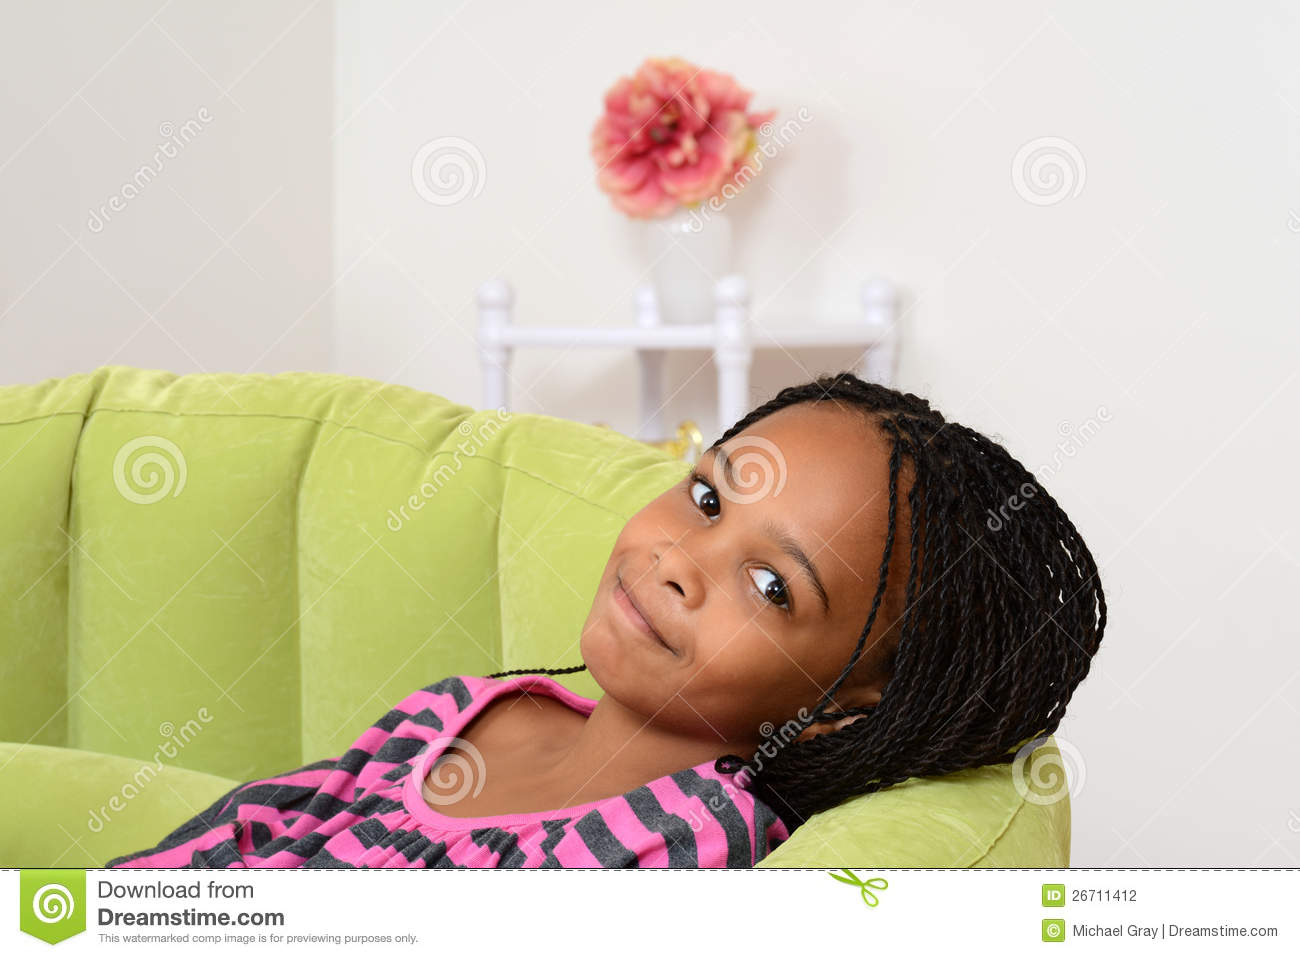 Black Child Sitting In Chair - Young black child relaxing in green chair